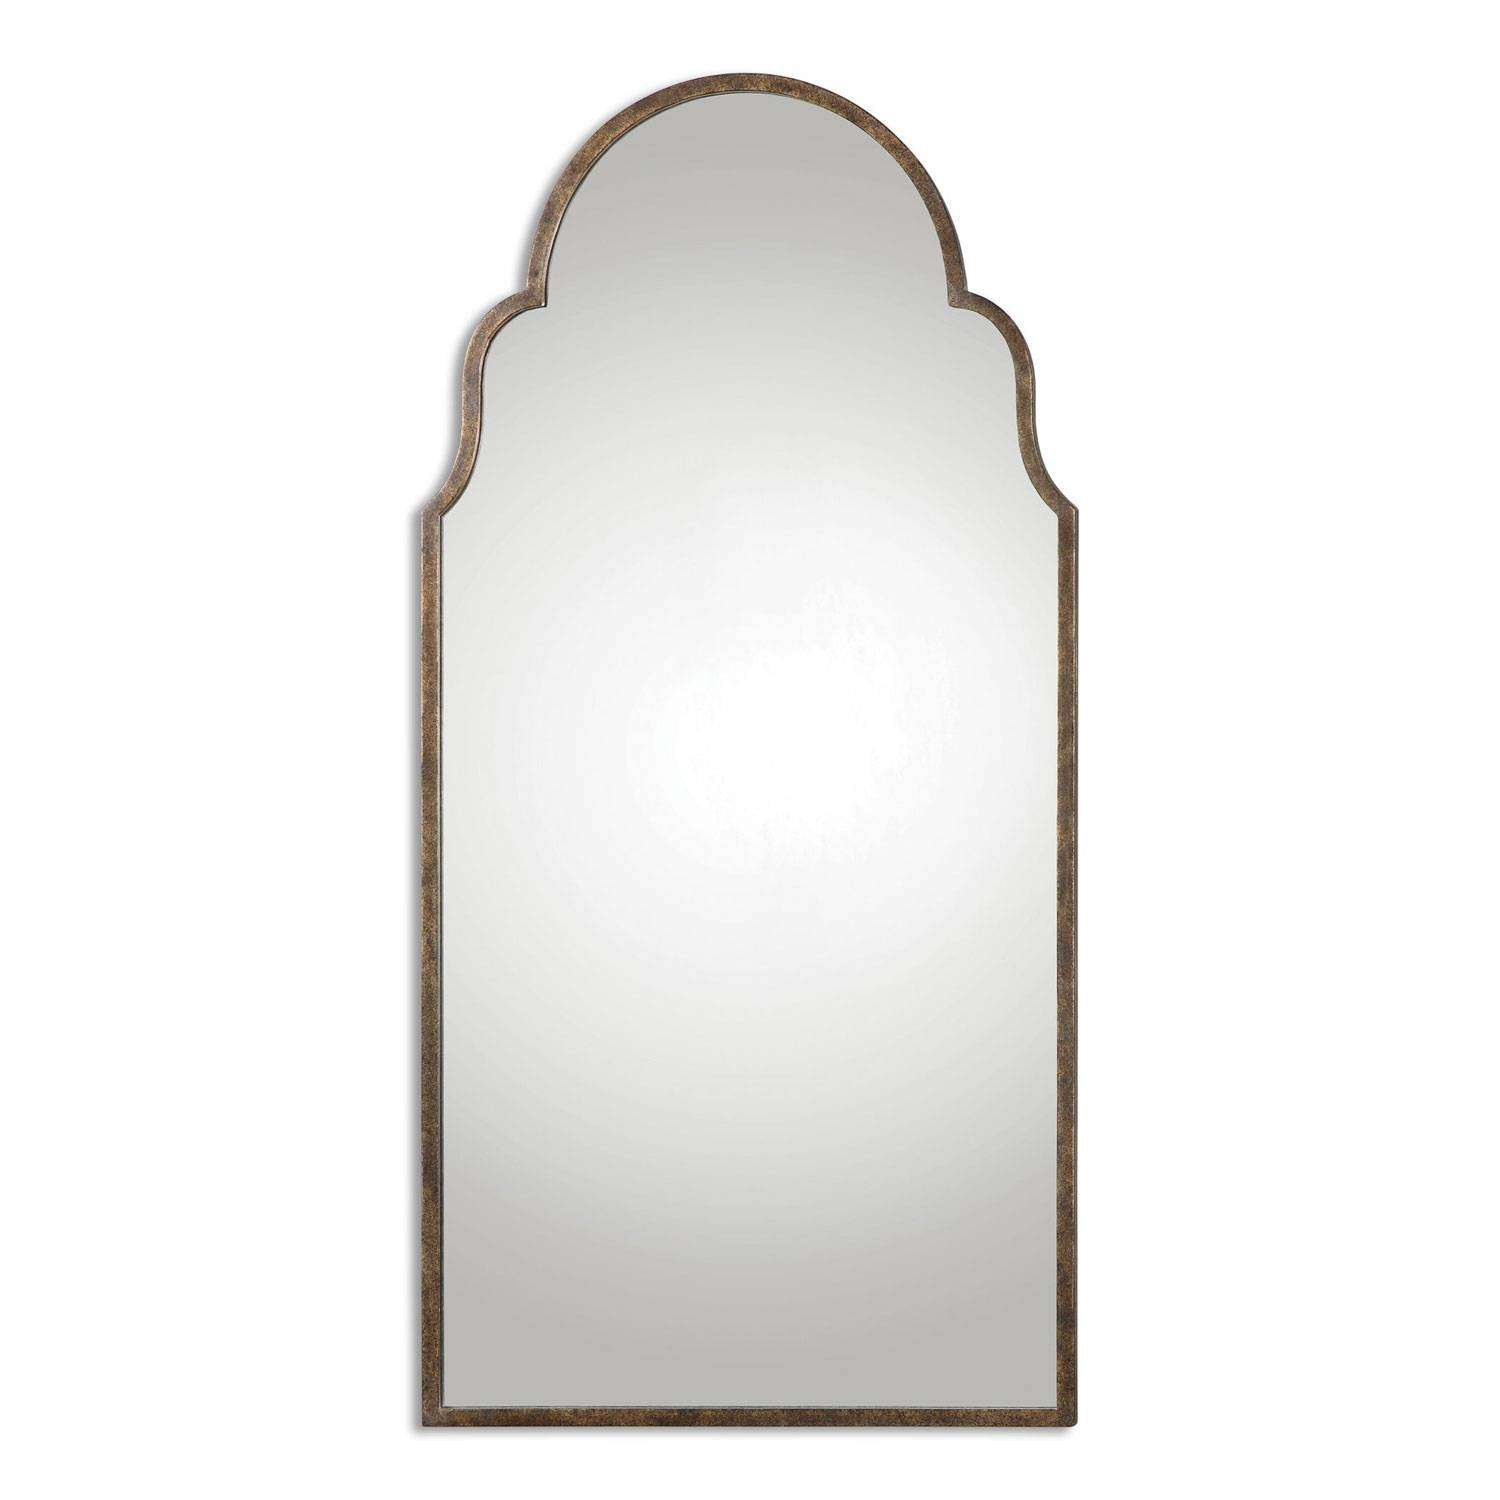 Brayden Rust Bronze Arch Mirror Uttermost Wall Mirror Mirrors Home Within Curved Top Mirrors (View 2 of 15)